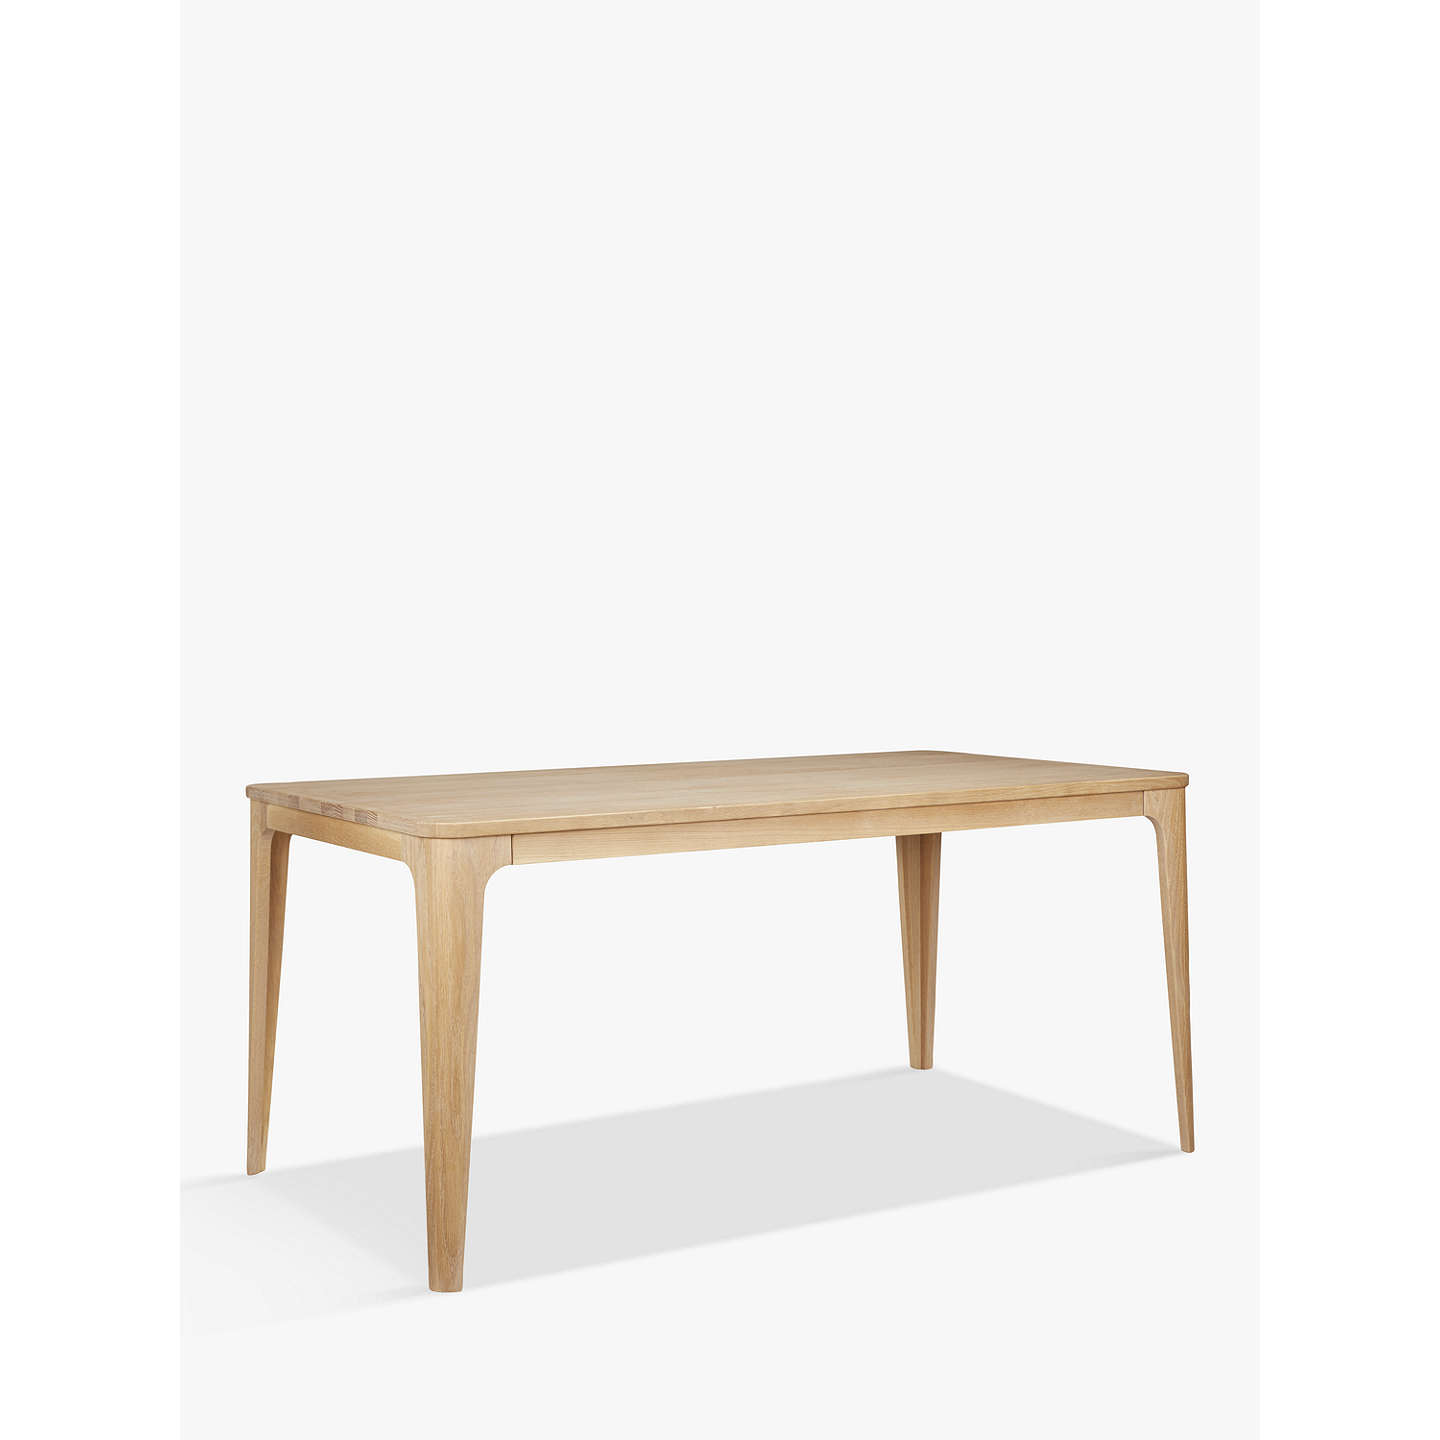 Ebbe Gehl For John Lewis Mira 6 Seater Dining Table At